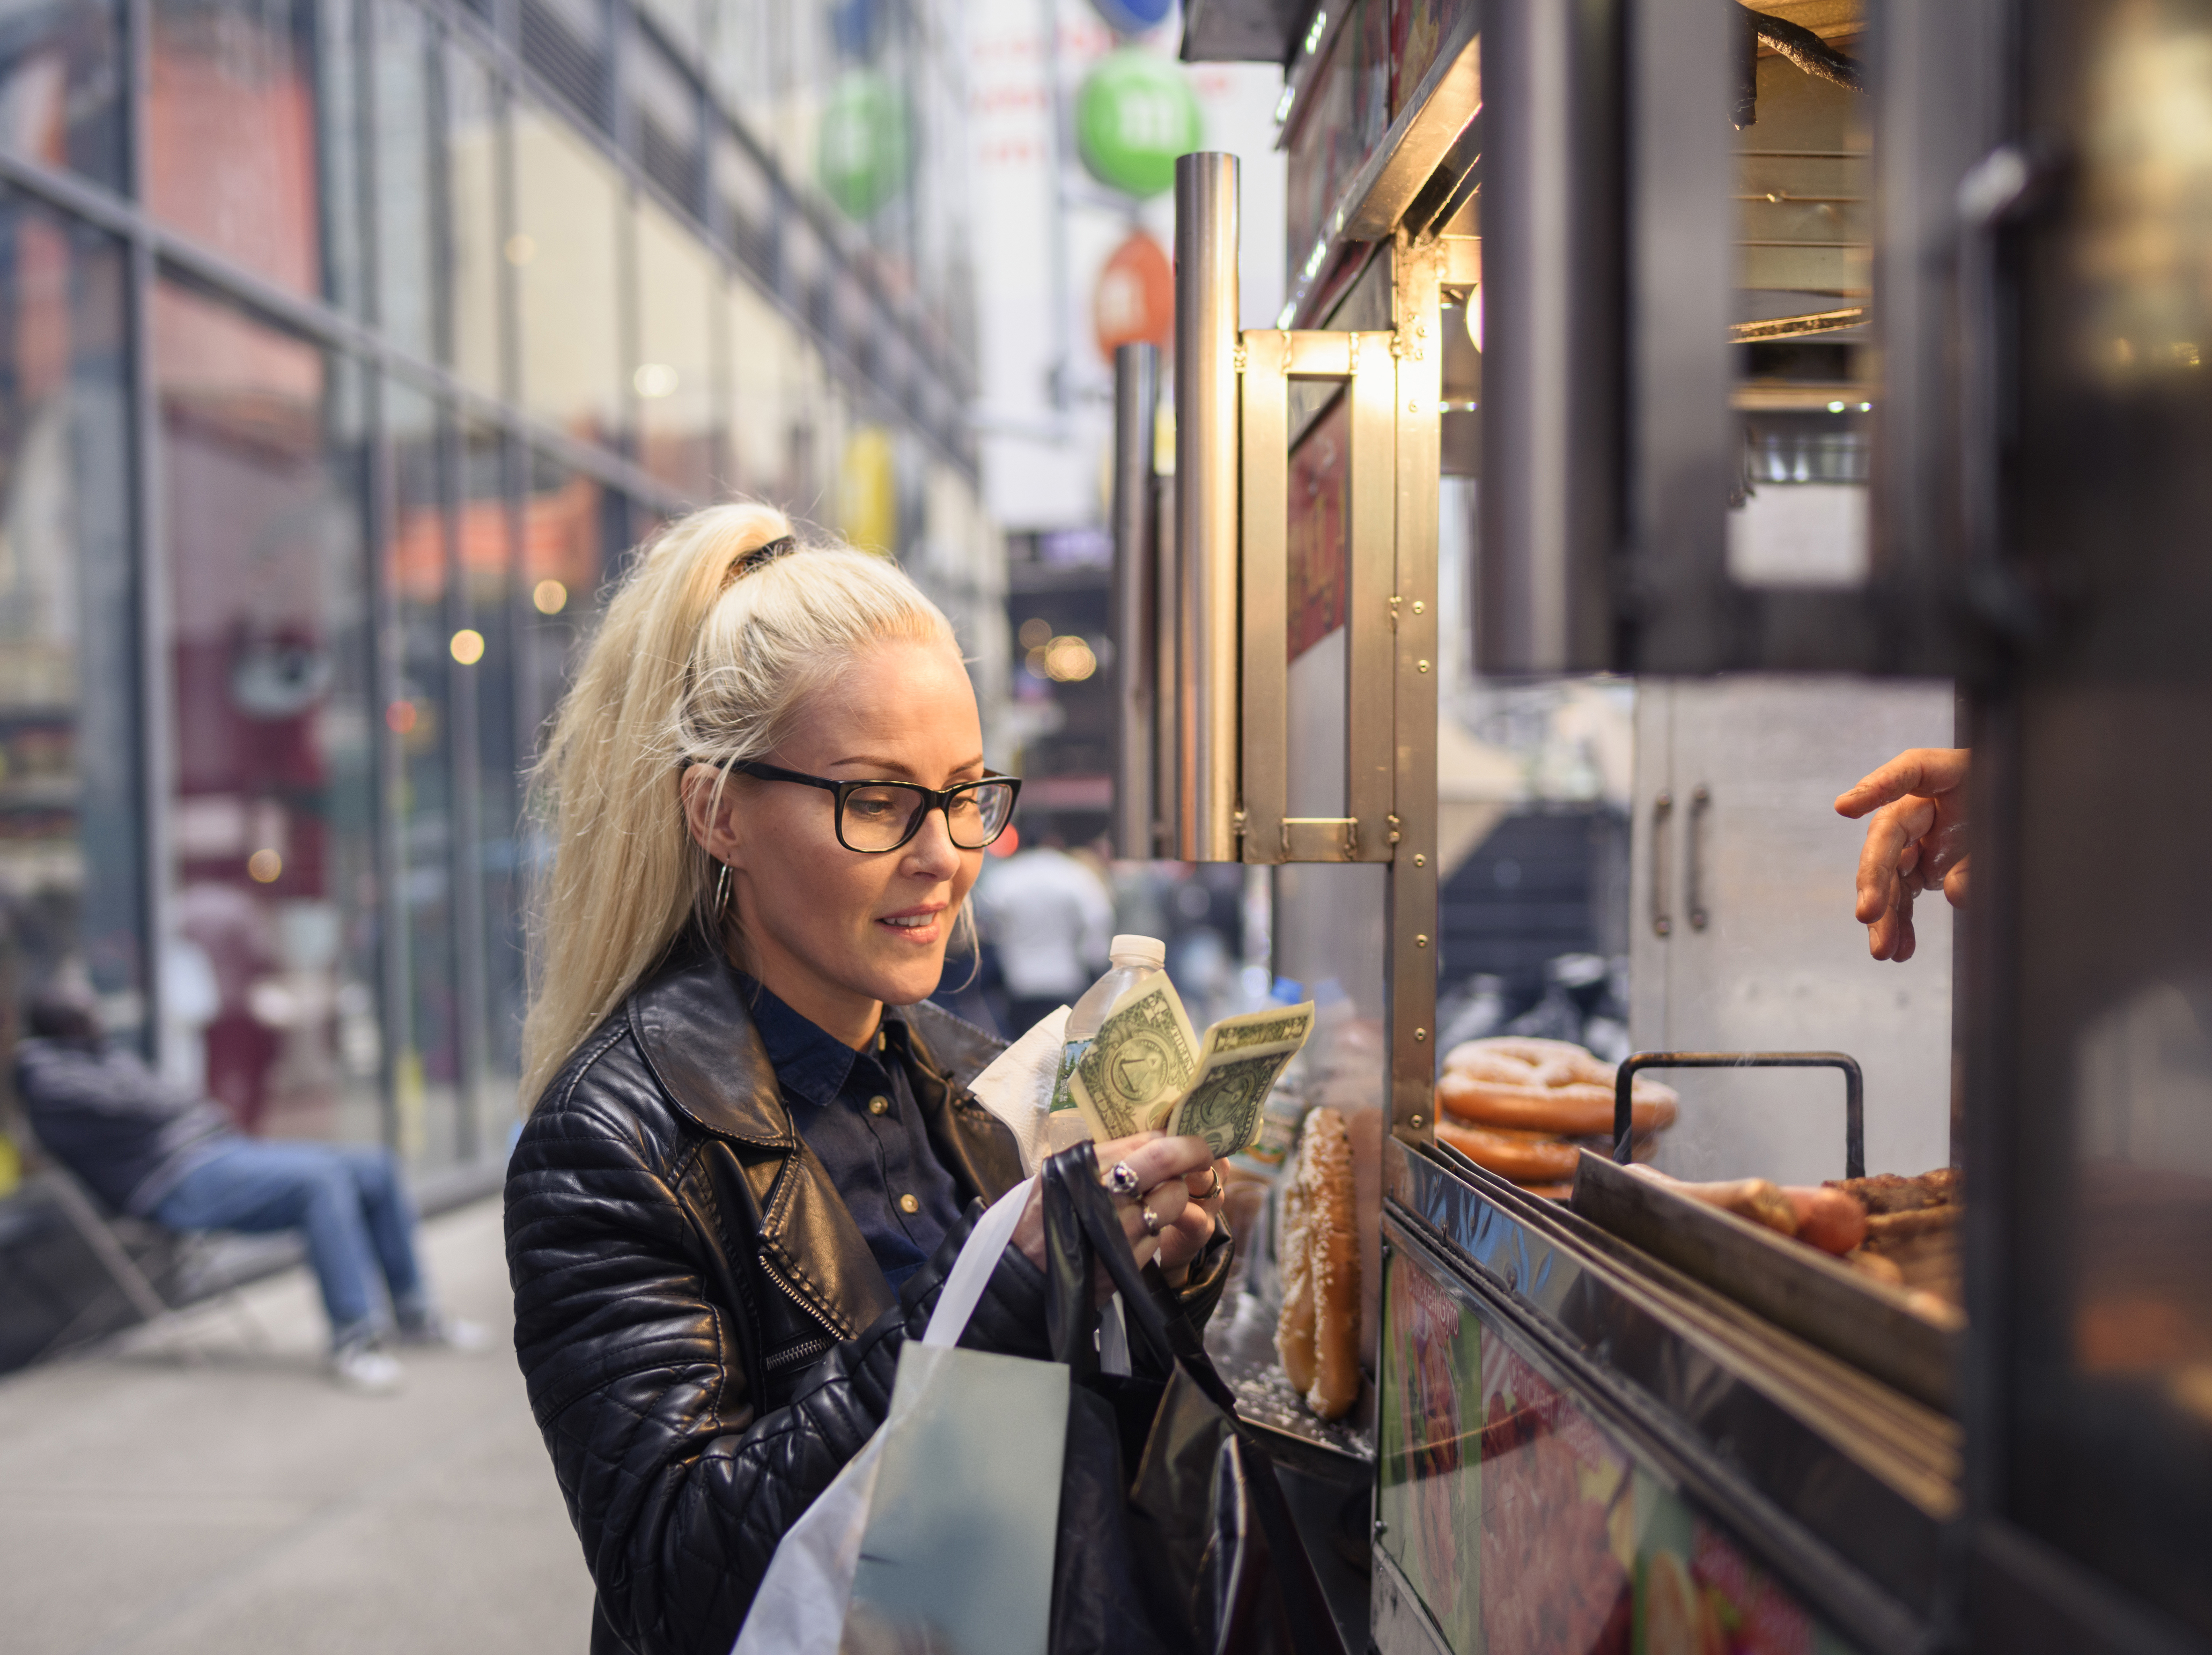 buying hotdog in New York